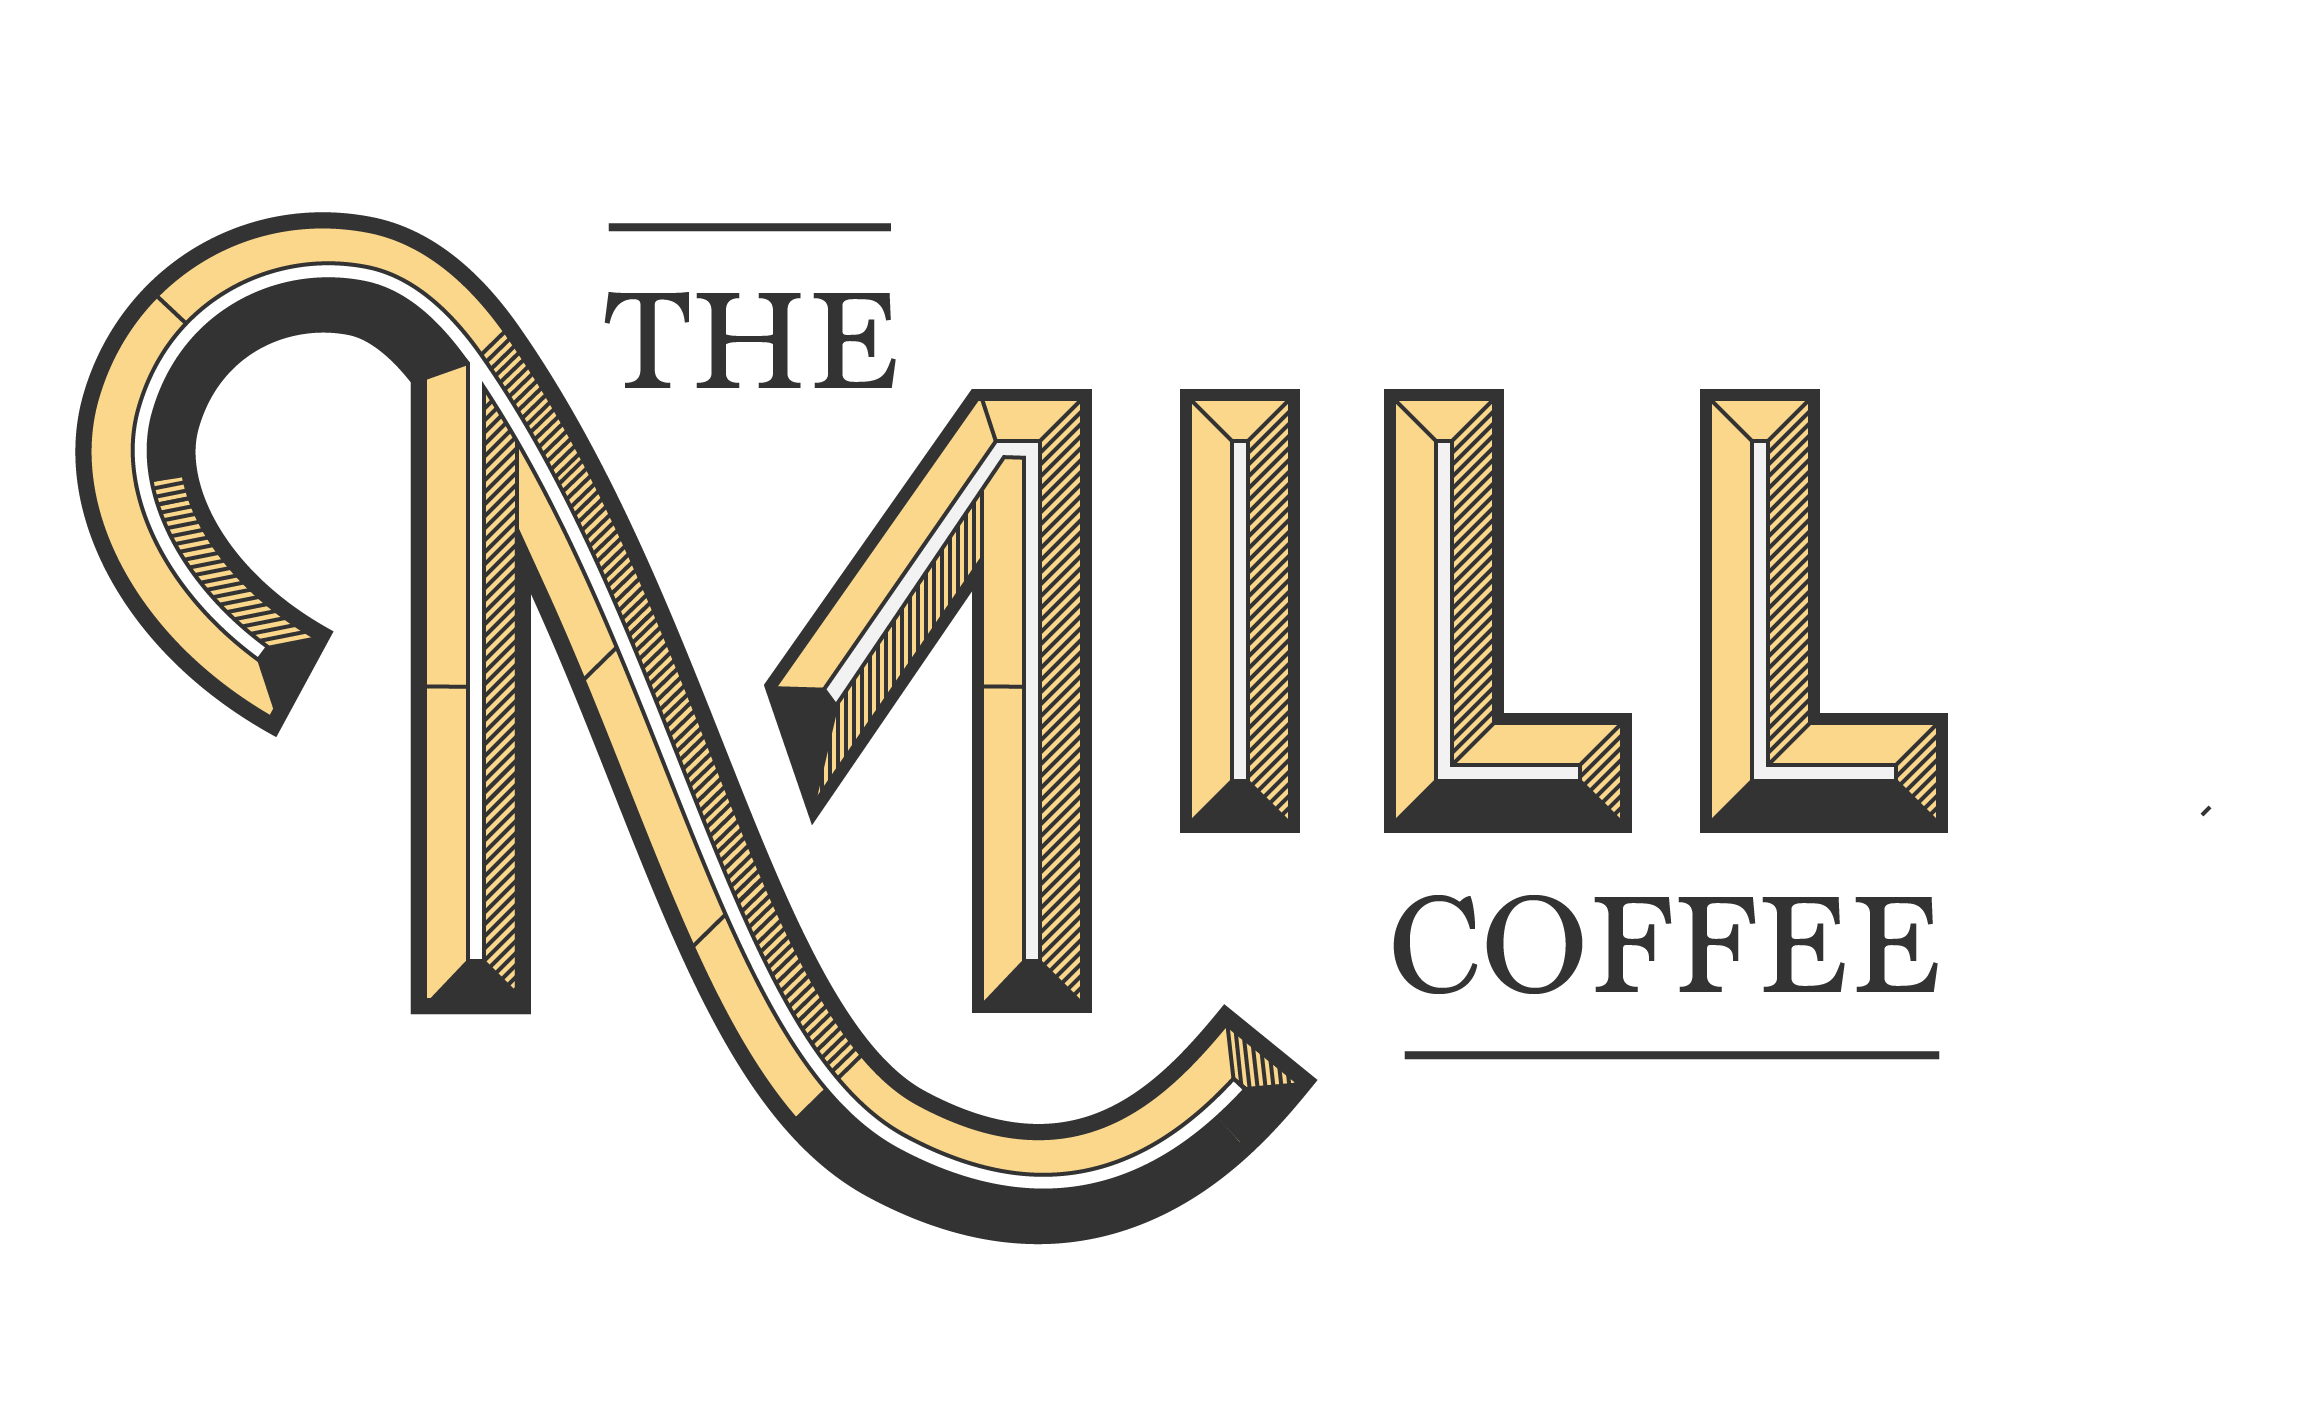 Feast Special: Half-off honey lattes   445 Church Street SE, Suite 2105 in The Old Woolen Mill Saturday Hours: 9 a.m. - 10 p.m.  The Mill Coffee features an eclectic atmosphere, a cool vibe and the most unique coffees, teas and other drinks in town.  $